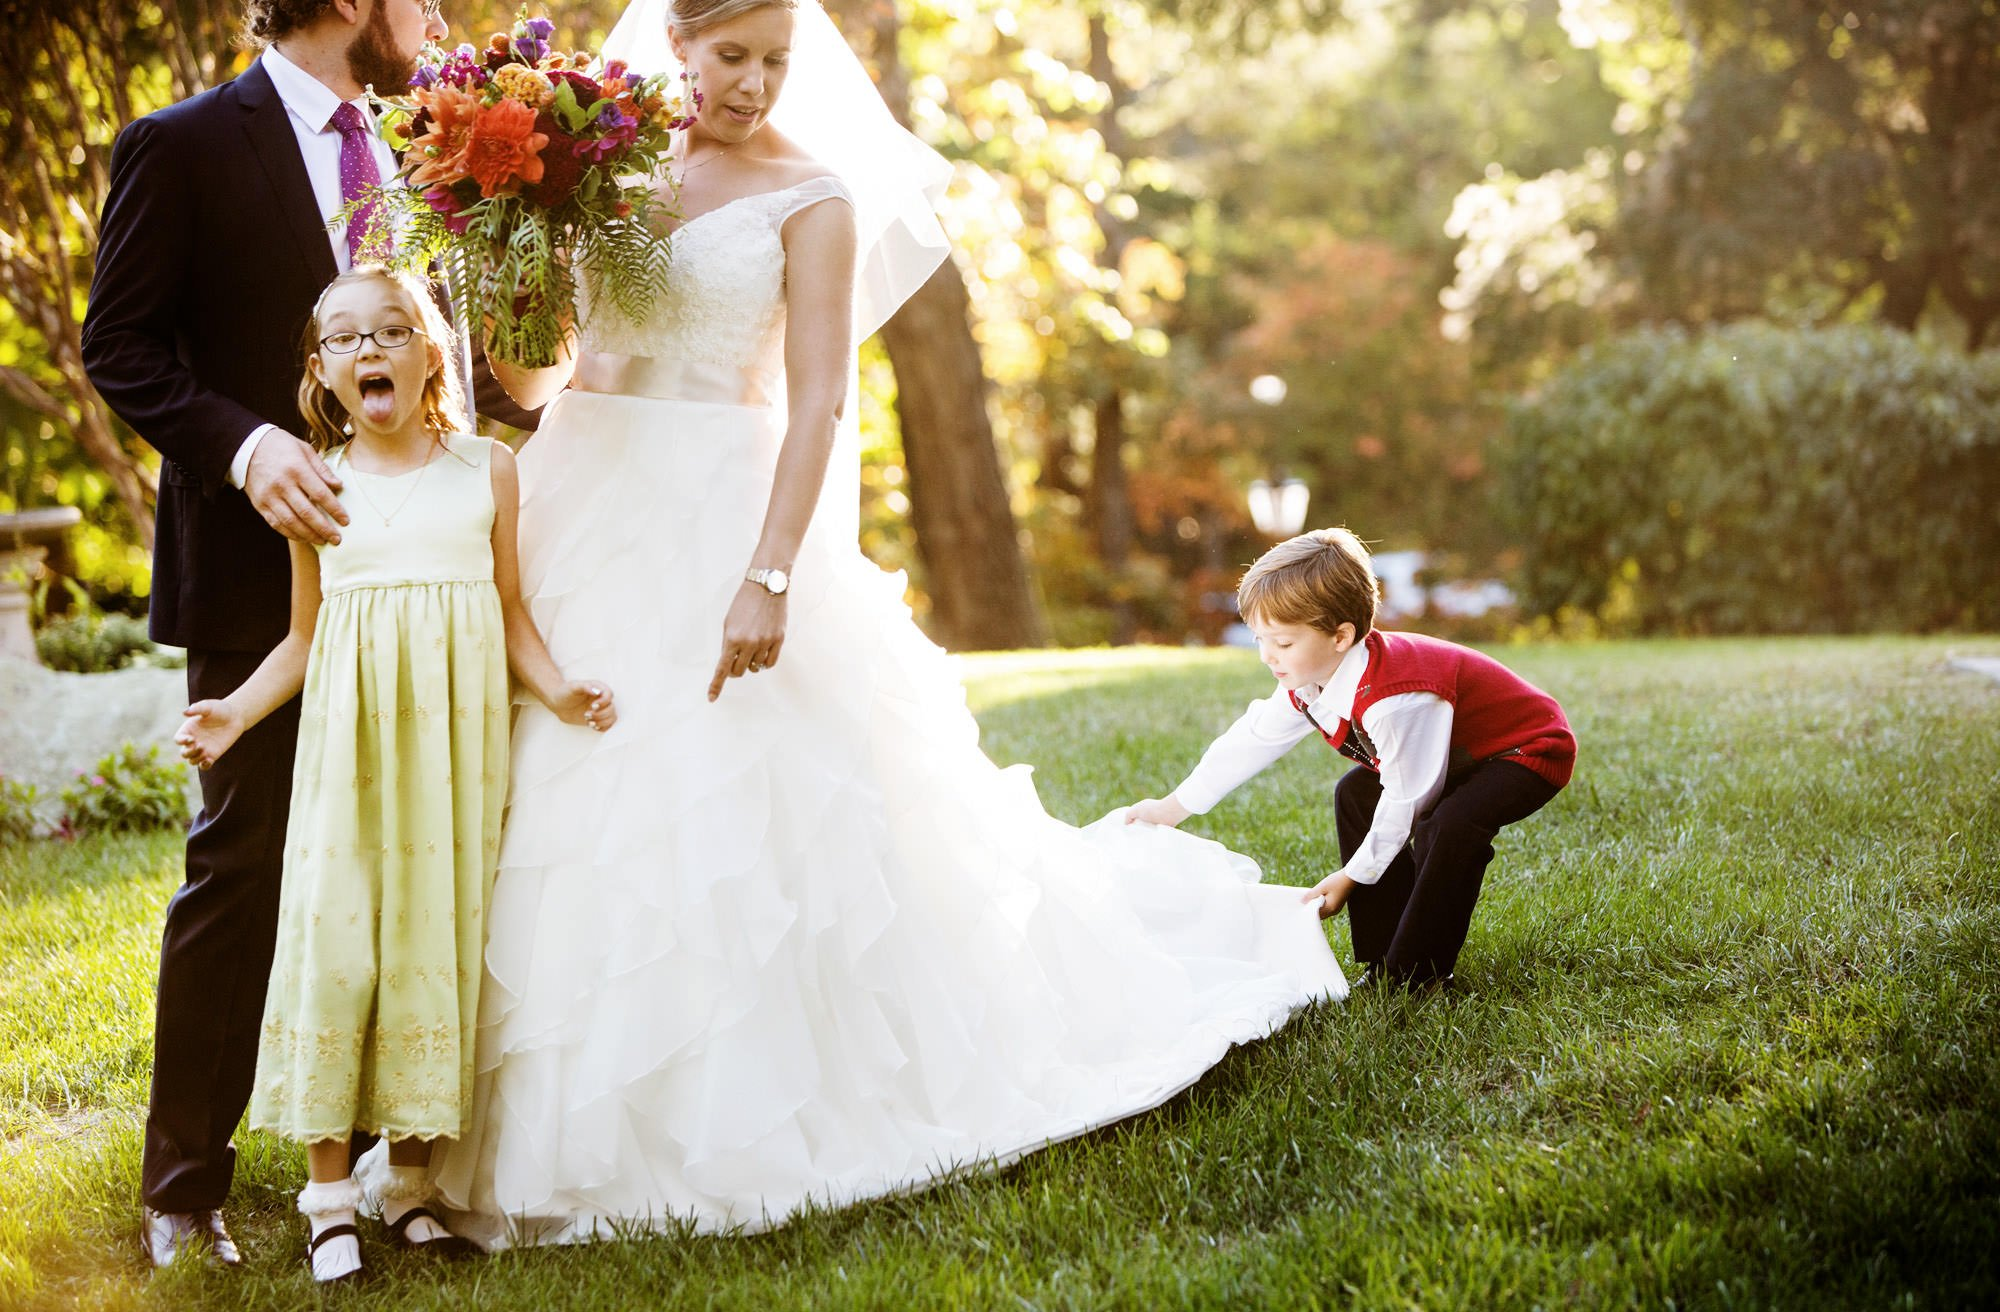 A silly portrait of the bride, groom, and children.